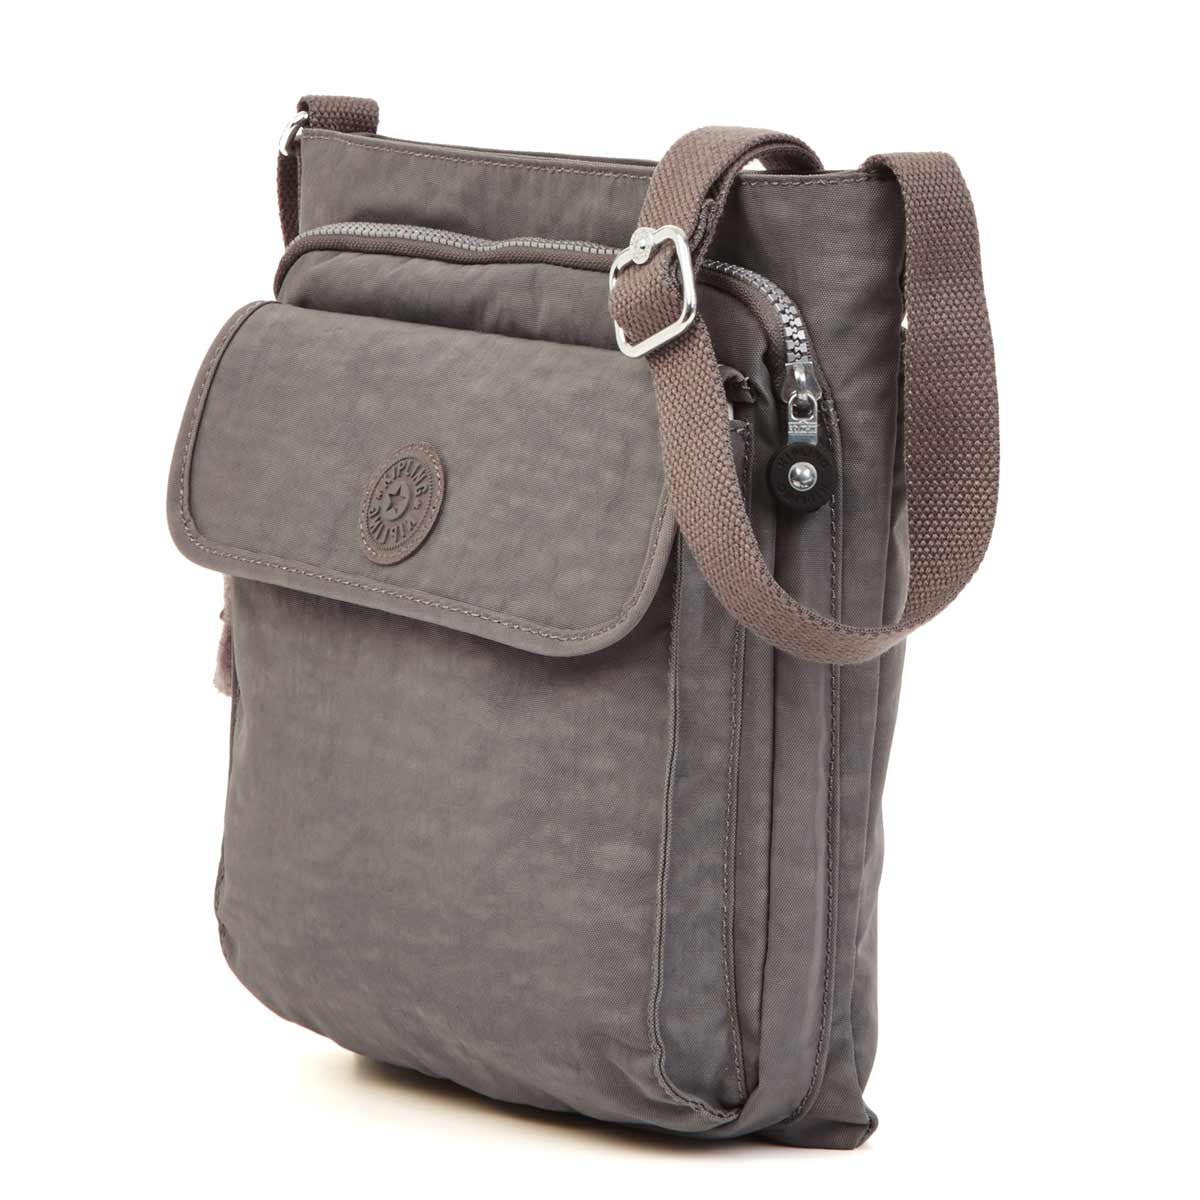 Kipling HB6222-021 Women's Machida Dusty Grey Nylon Crossbody Messenger